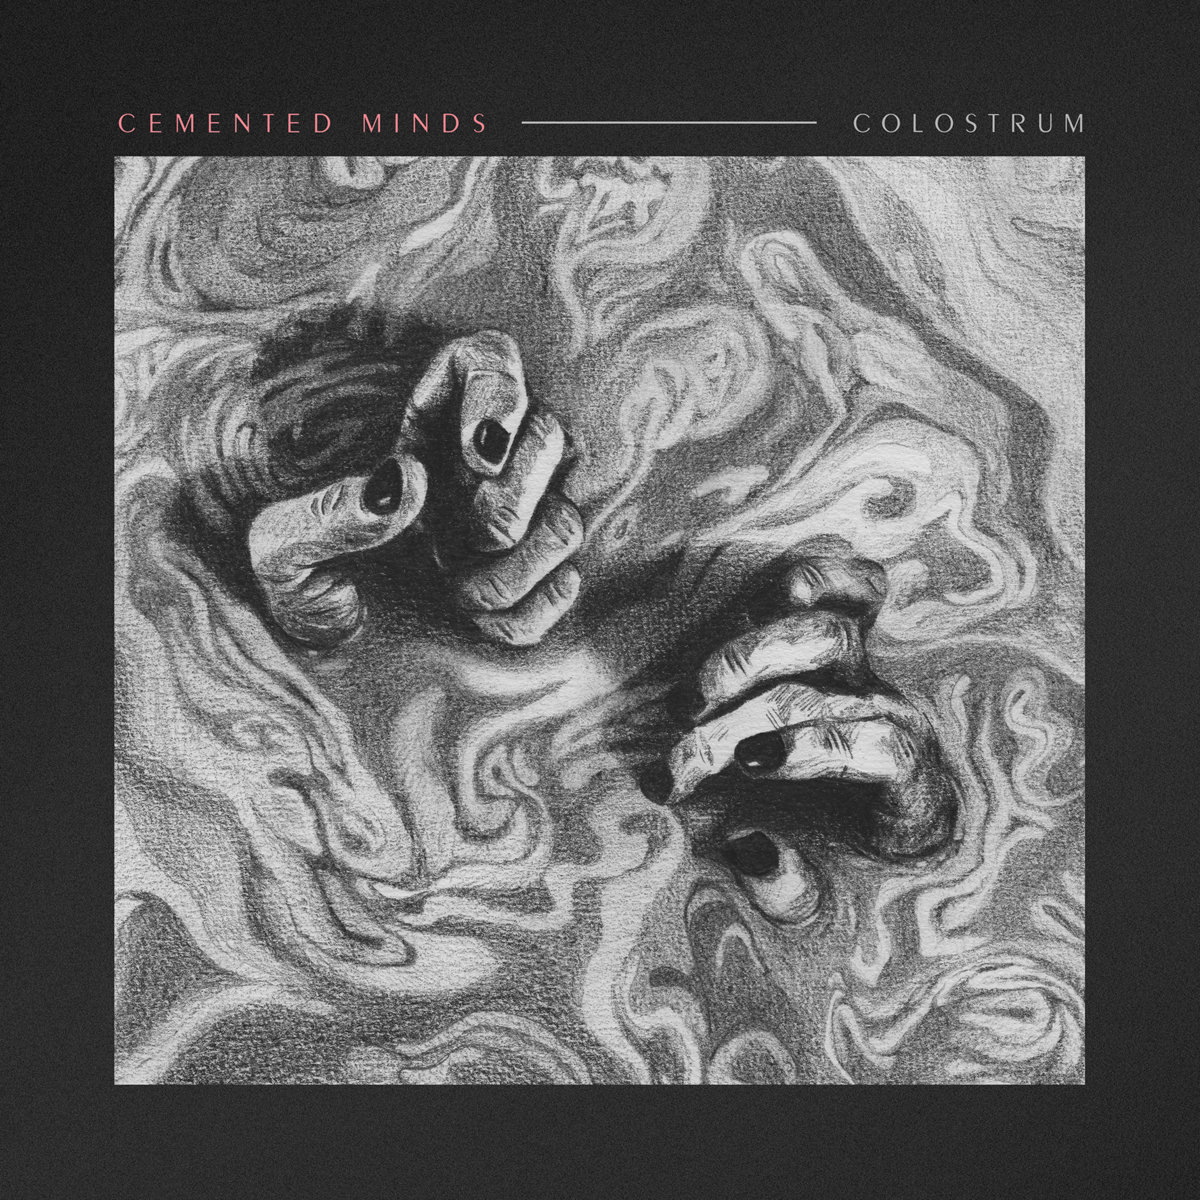 CEMENTED MINDS - Colostrum